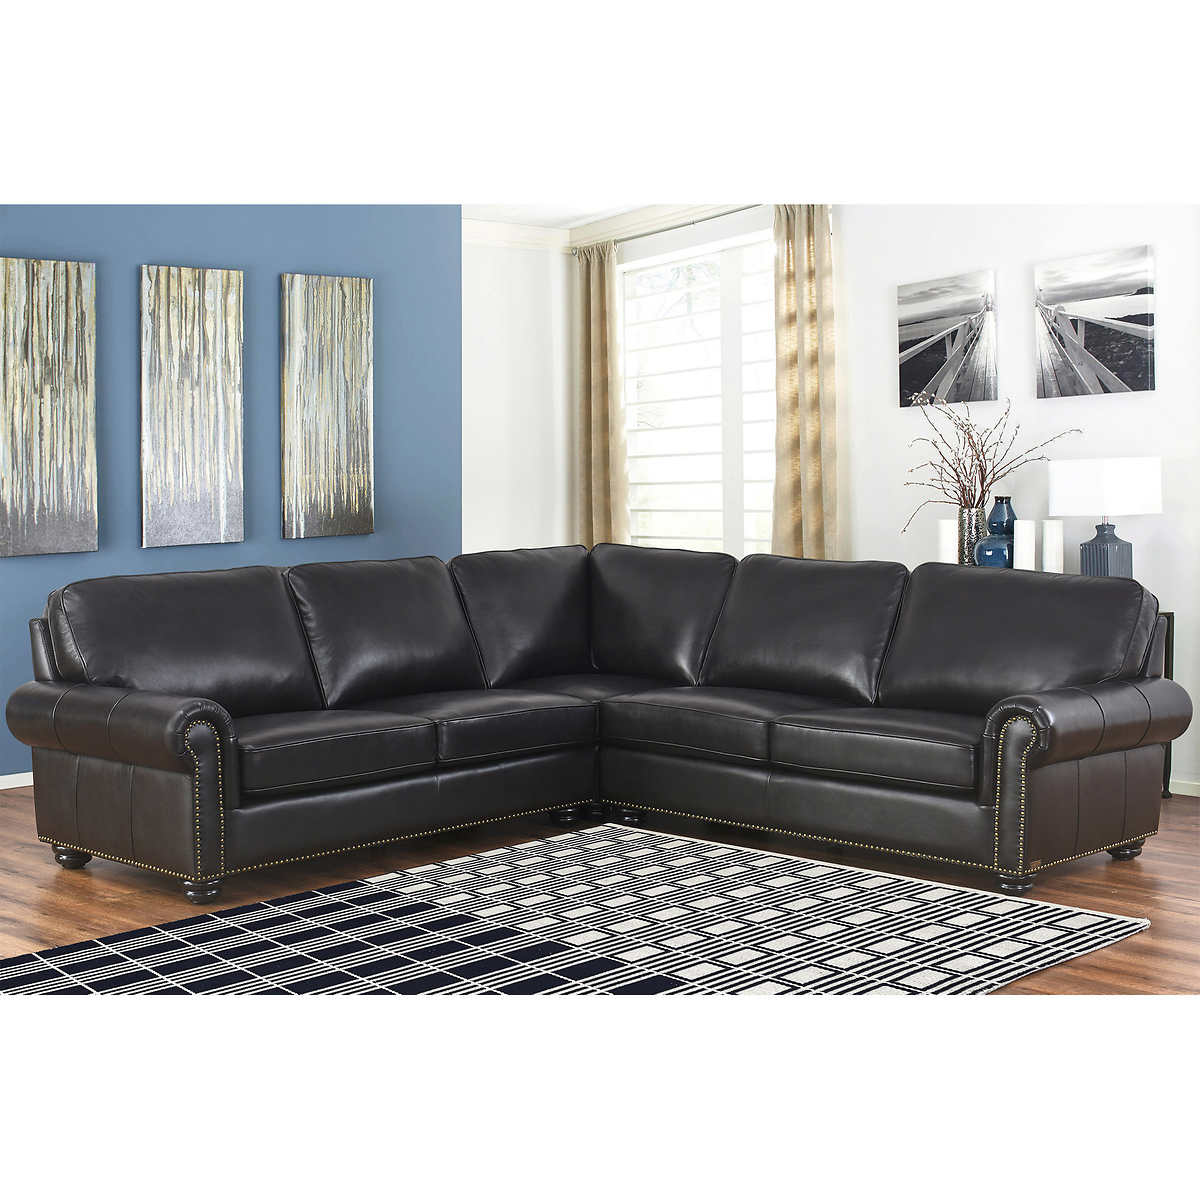 Delmar Top Grain Leather Sectional Living Room Set